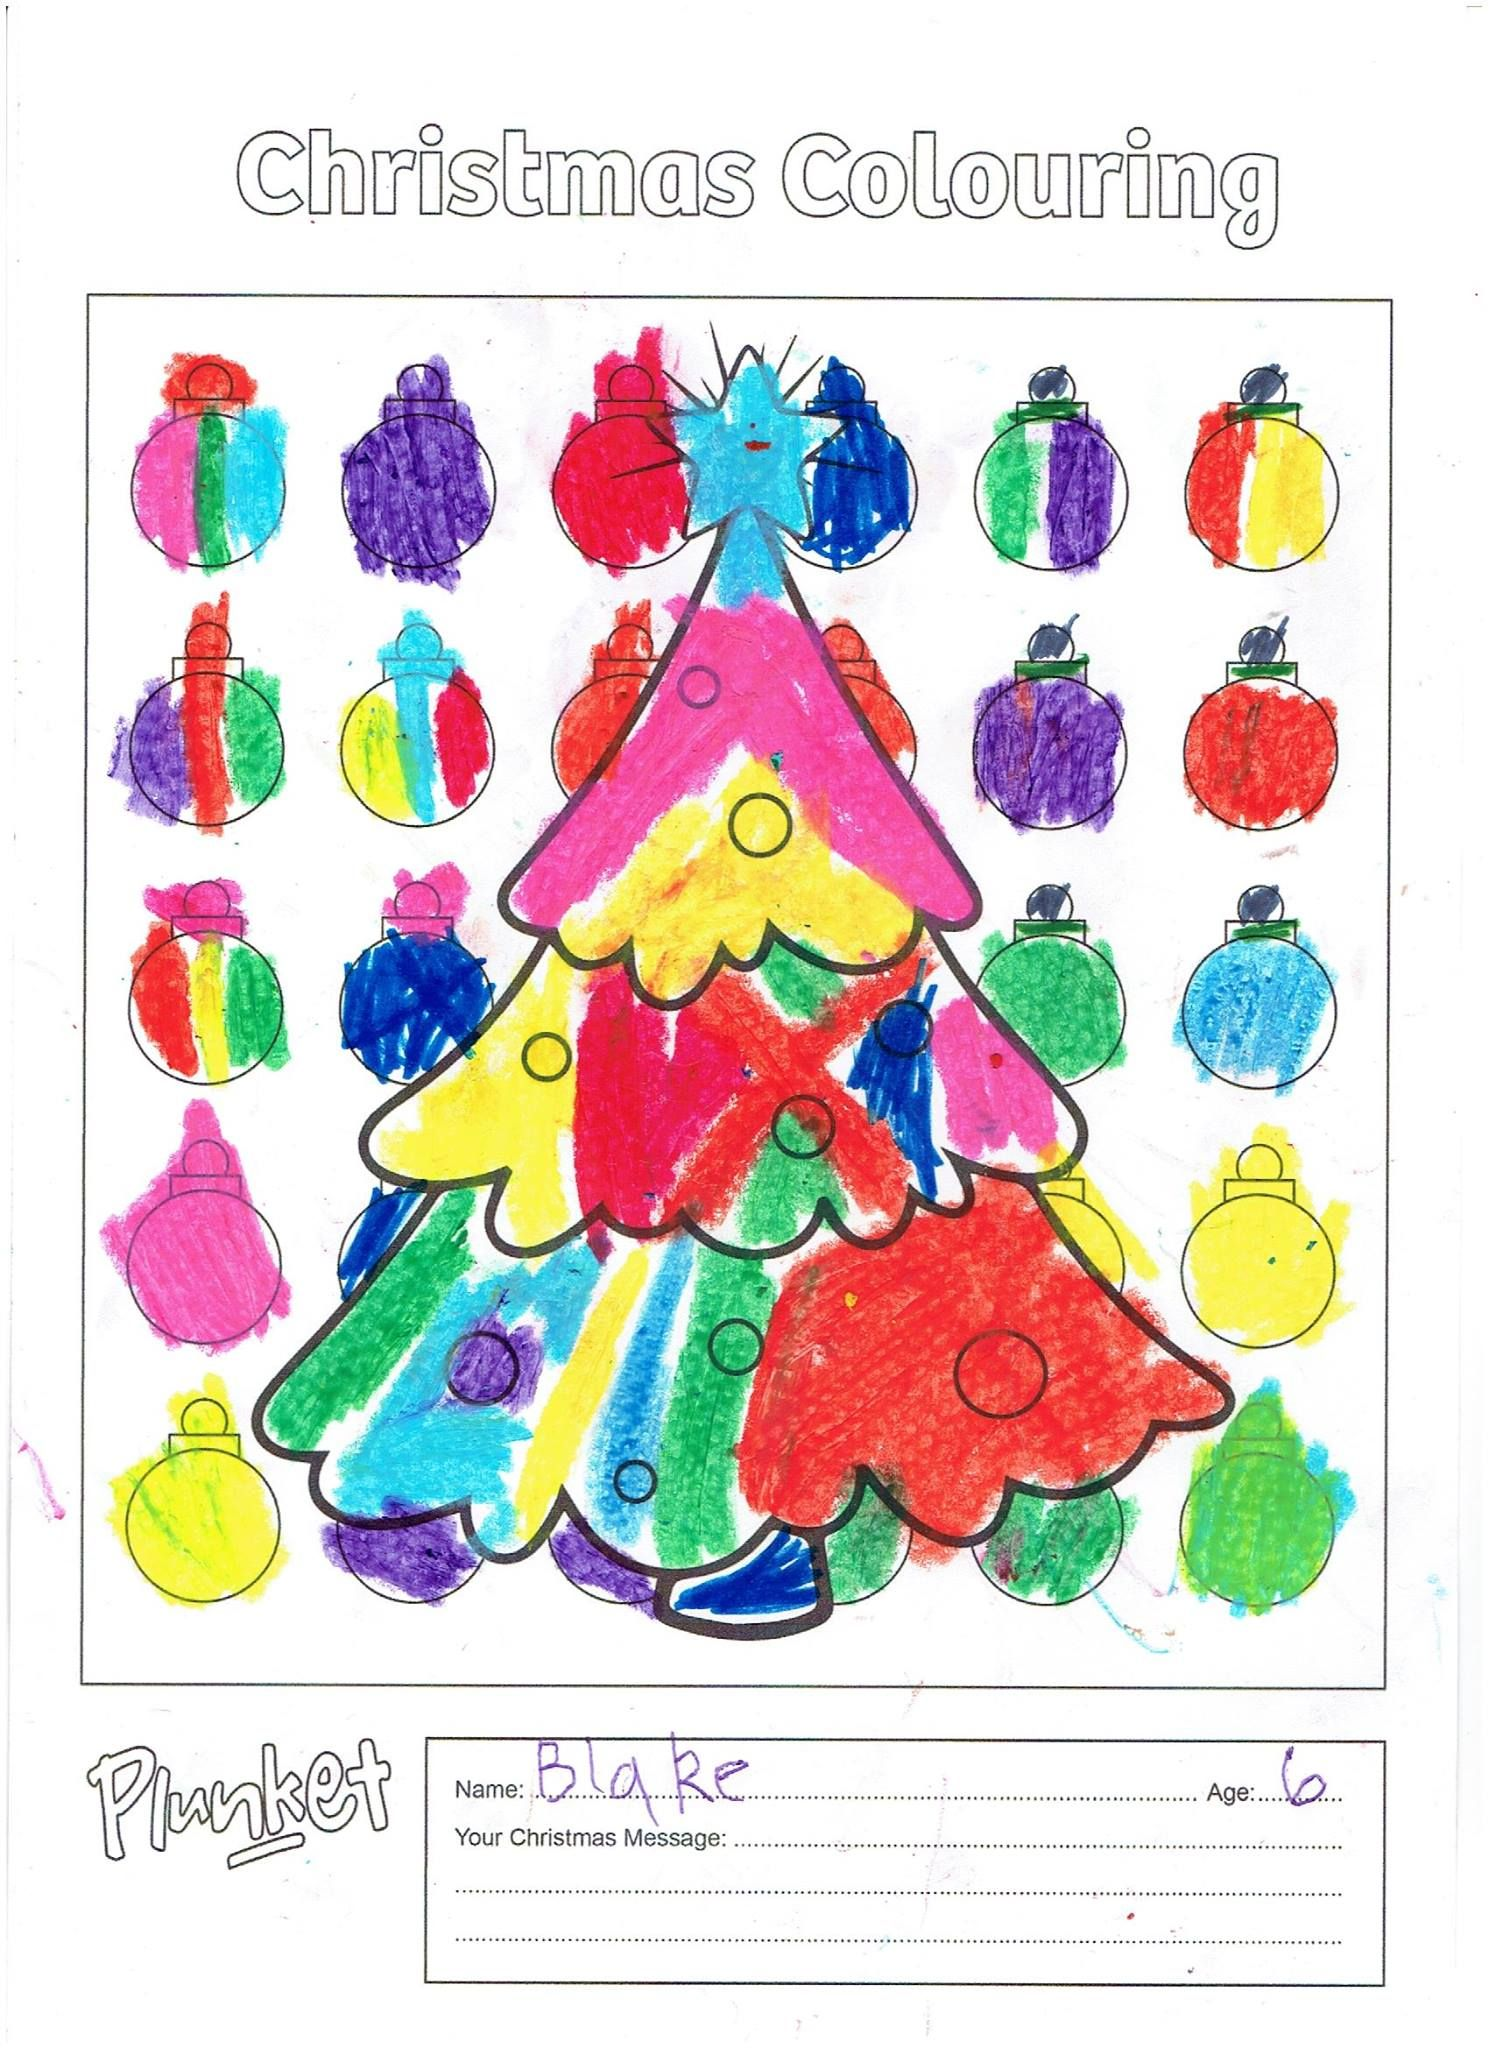 Blake 6 Years Old Christmas Colors Christmas Messages Coloring Pages